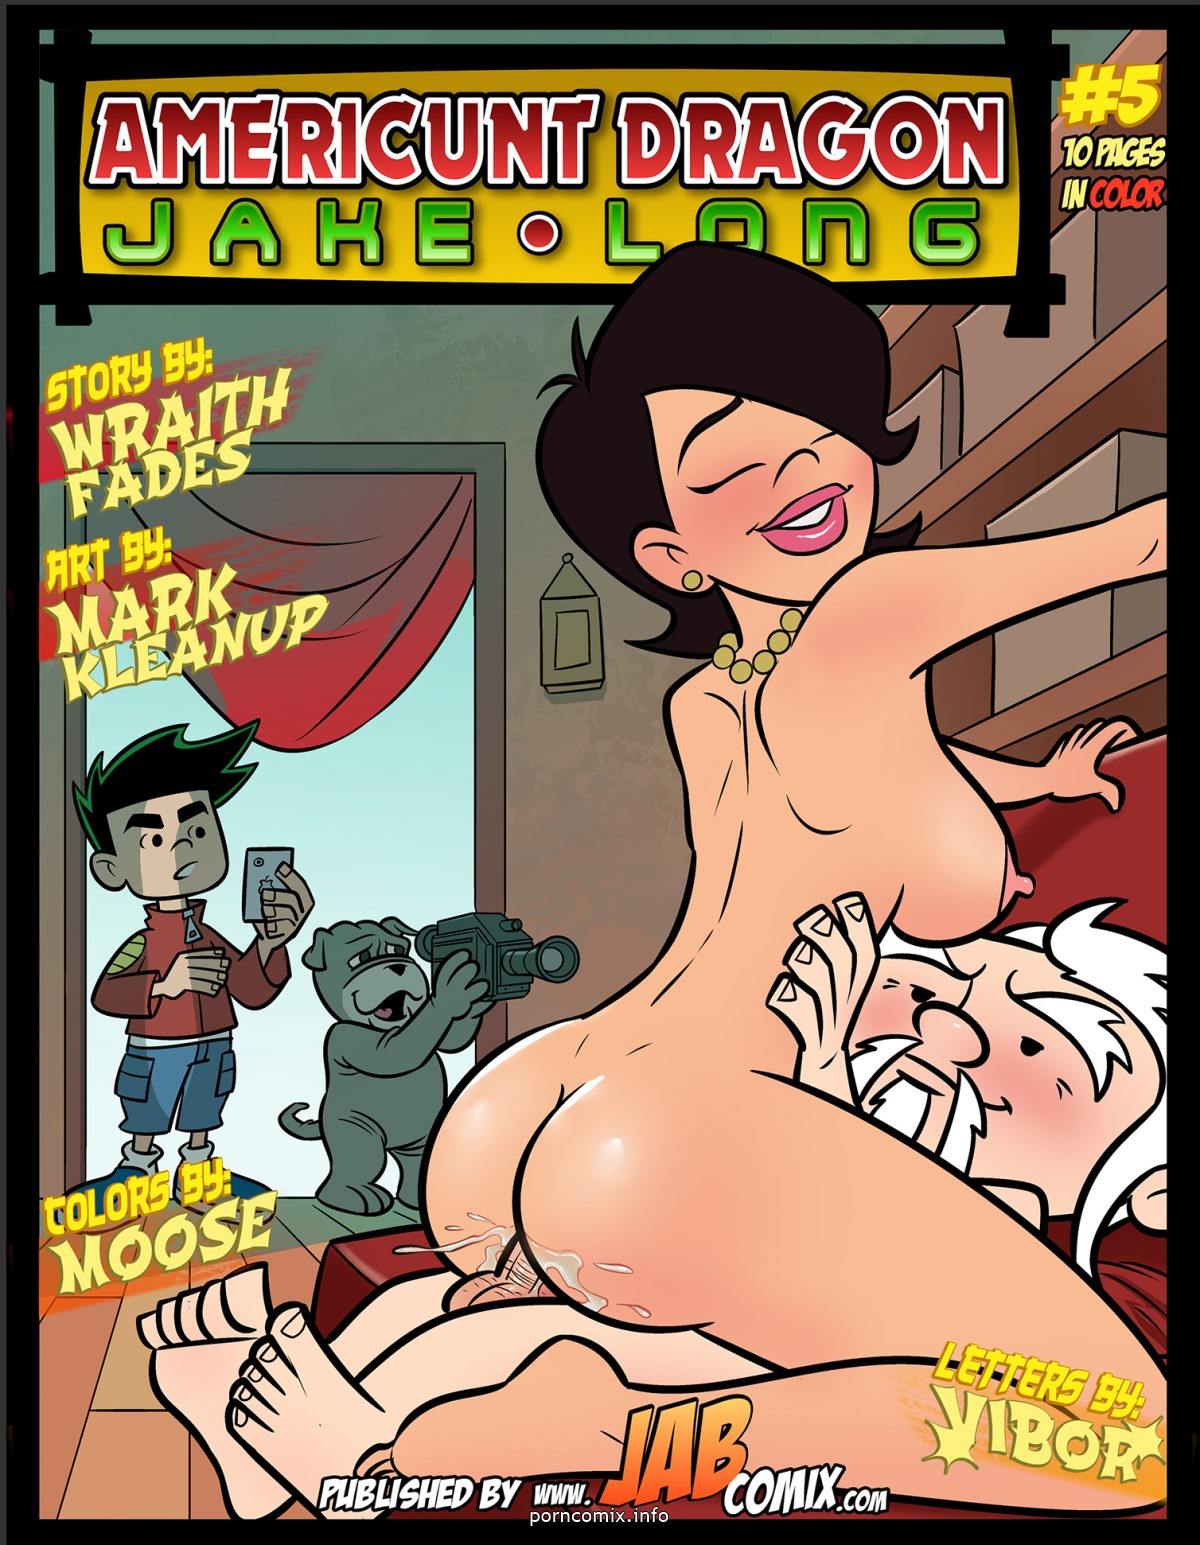 JabComix - Americunt Dragon 5